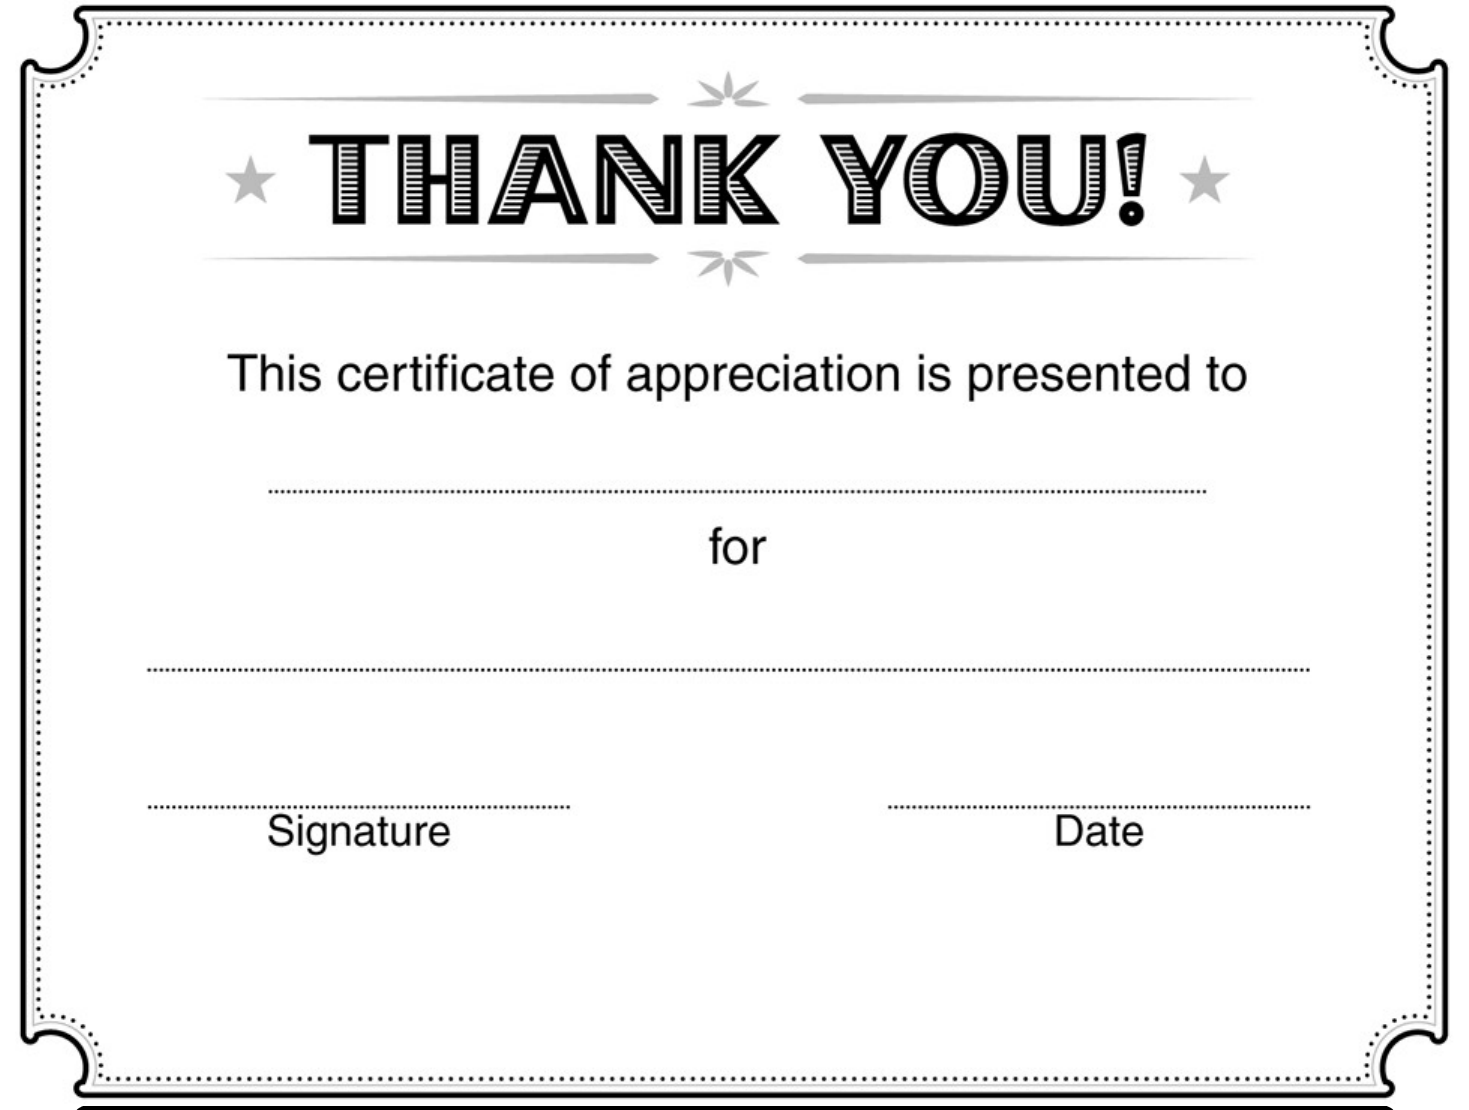 the certificate of appreciation template can help you make a certificate of appreciation template 2